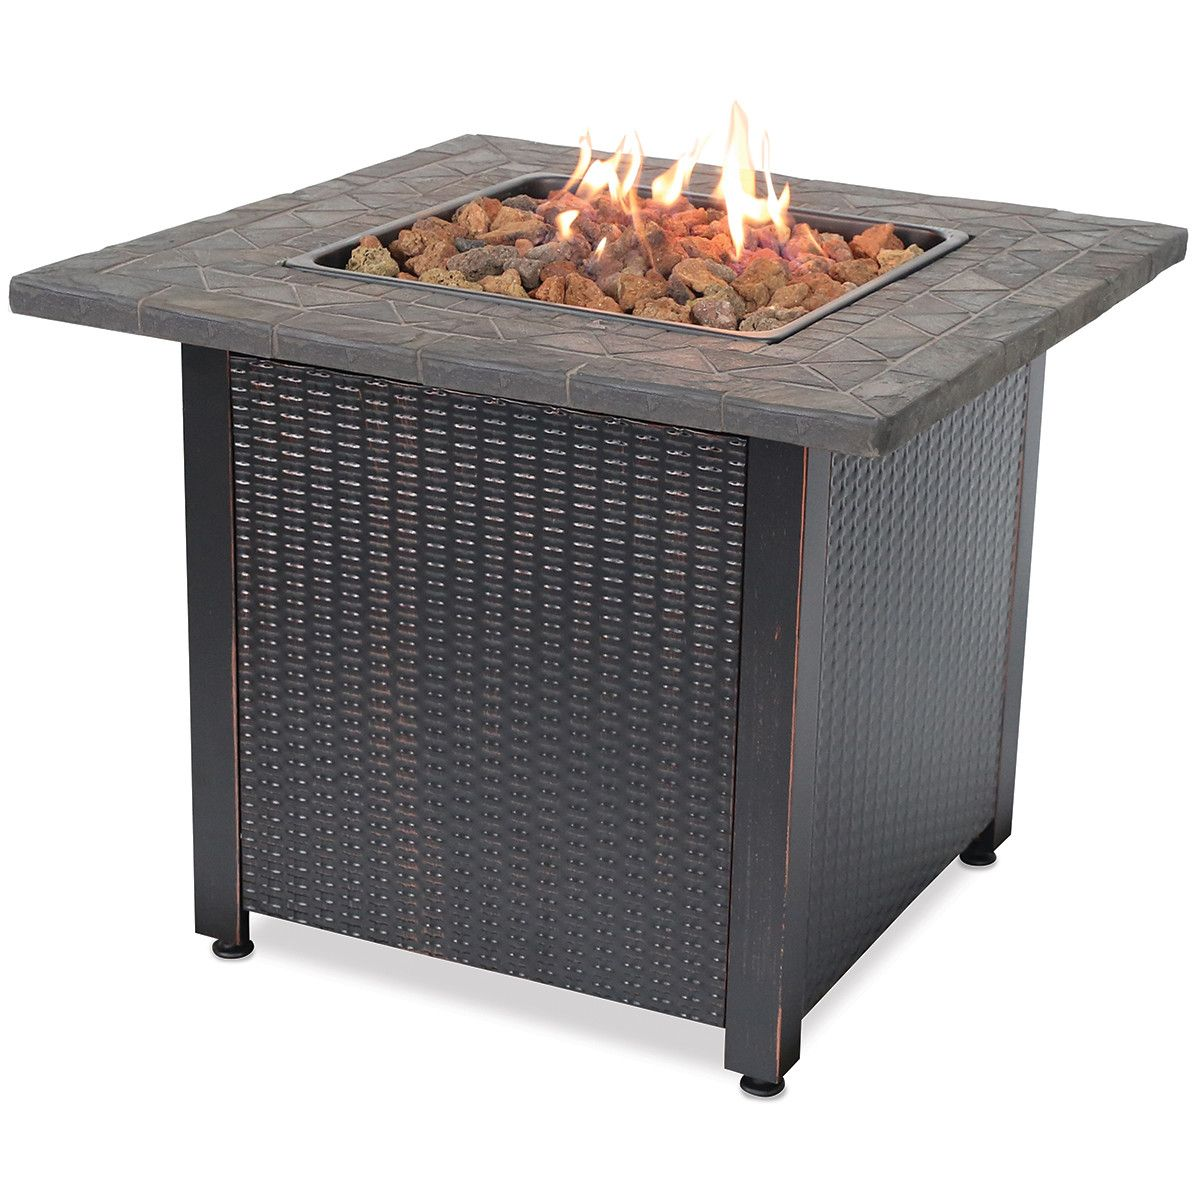 Endless summer stainless steel gas outdoor fire pit table outdoor